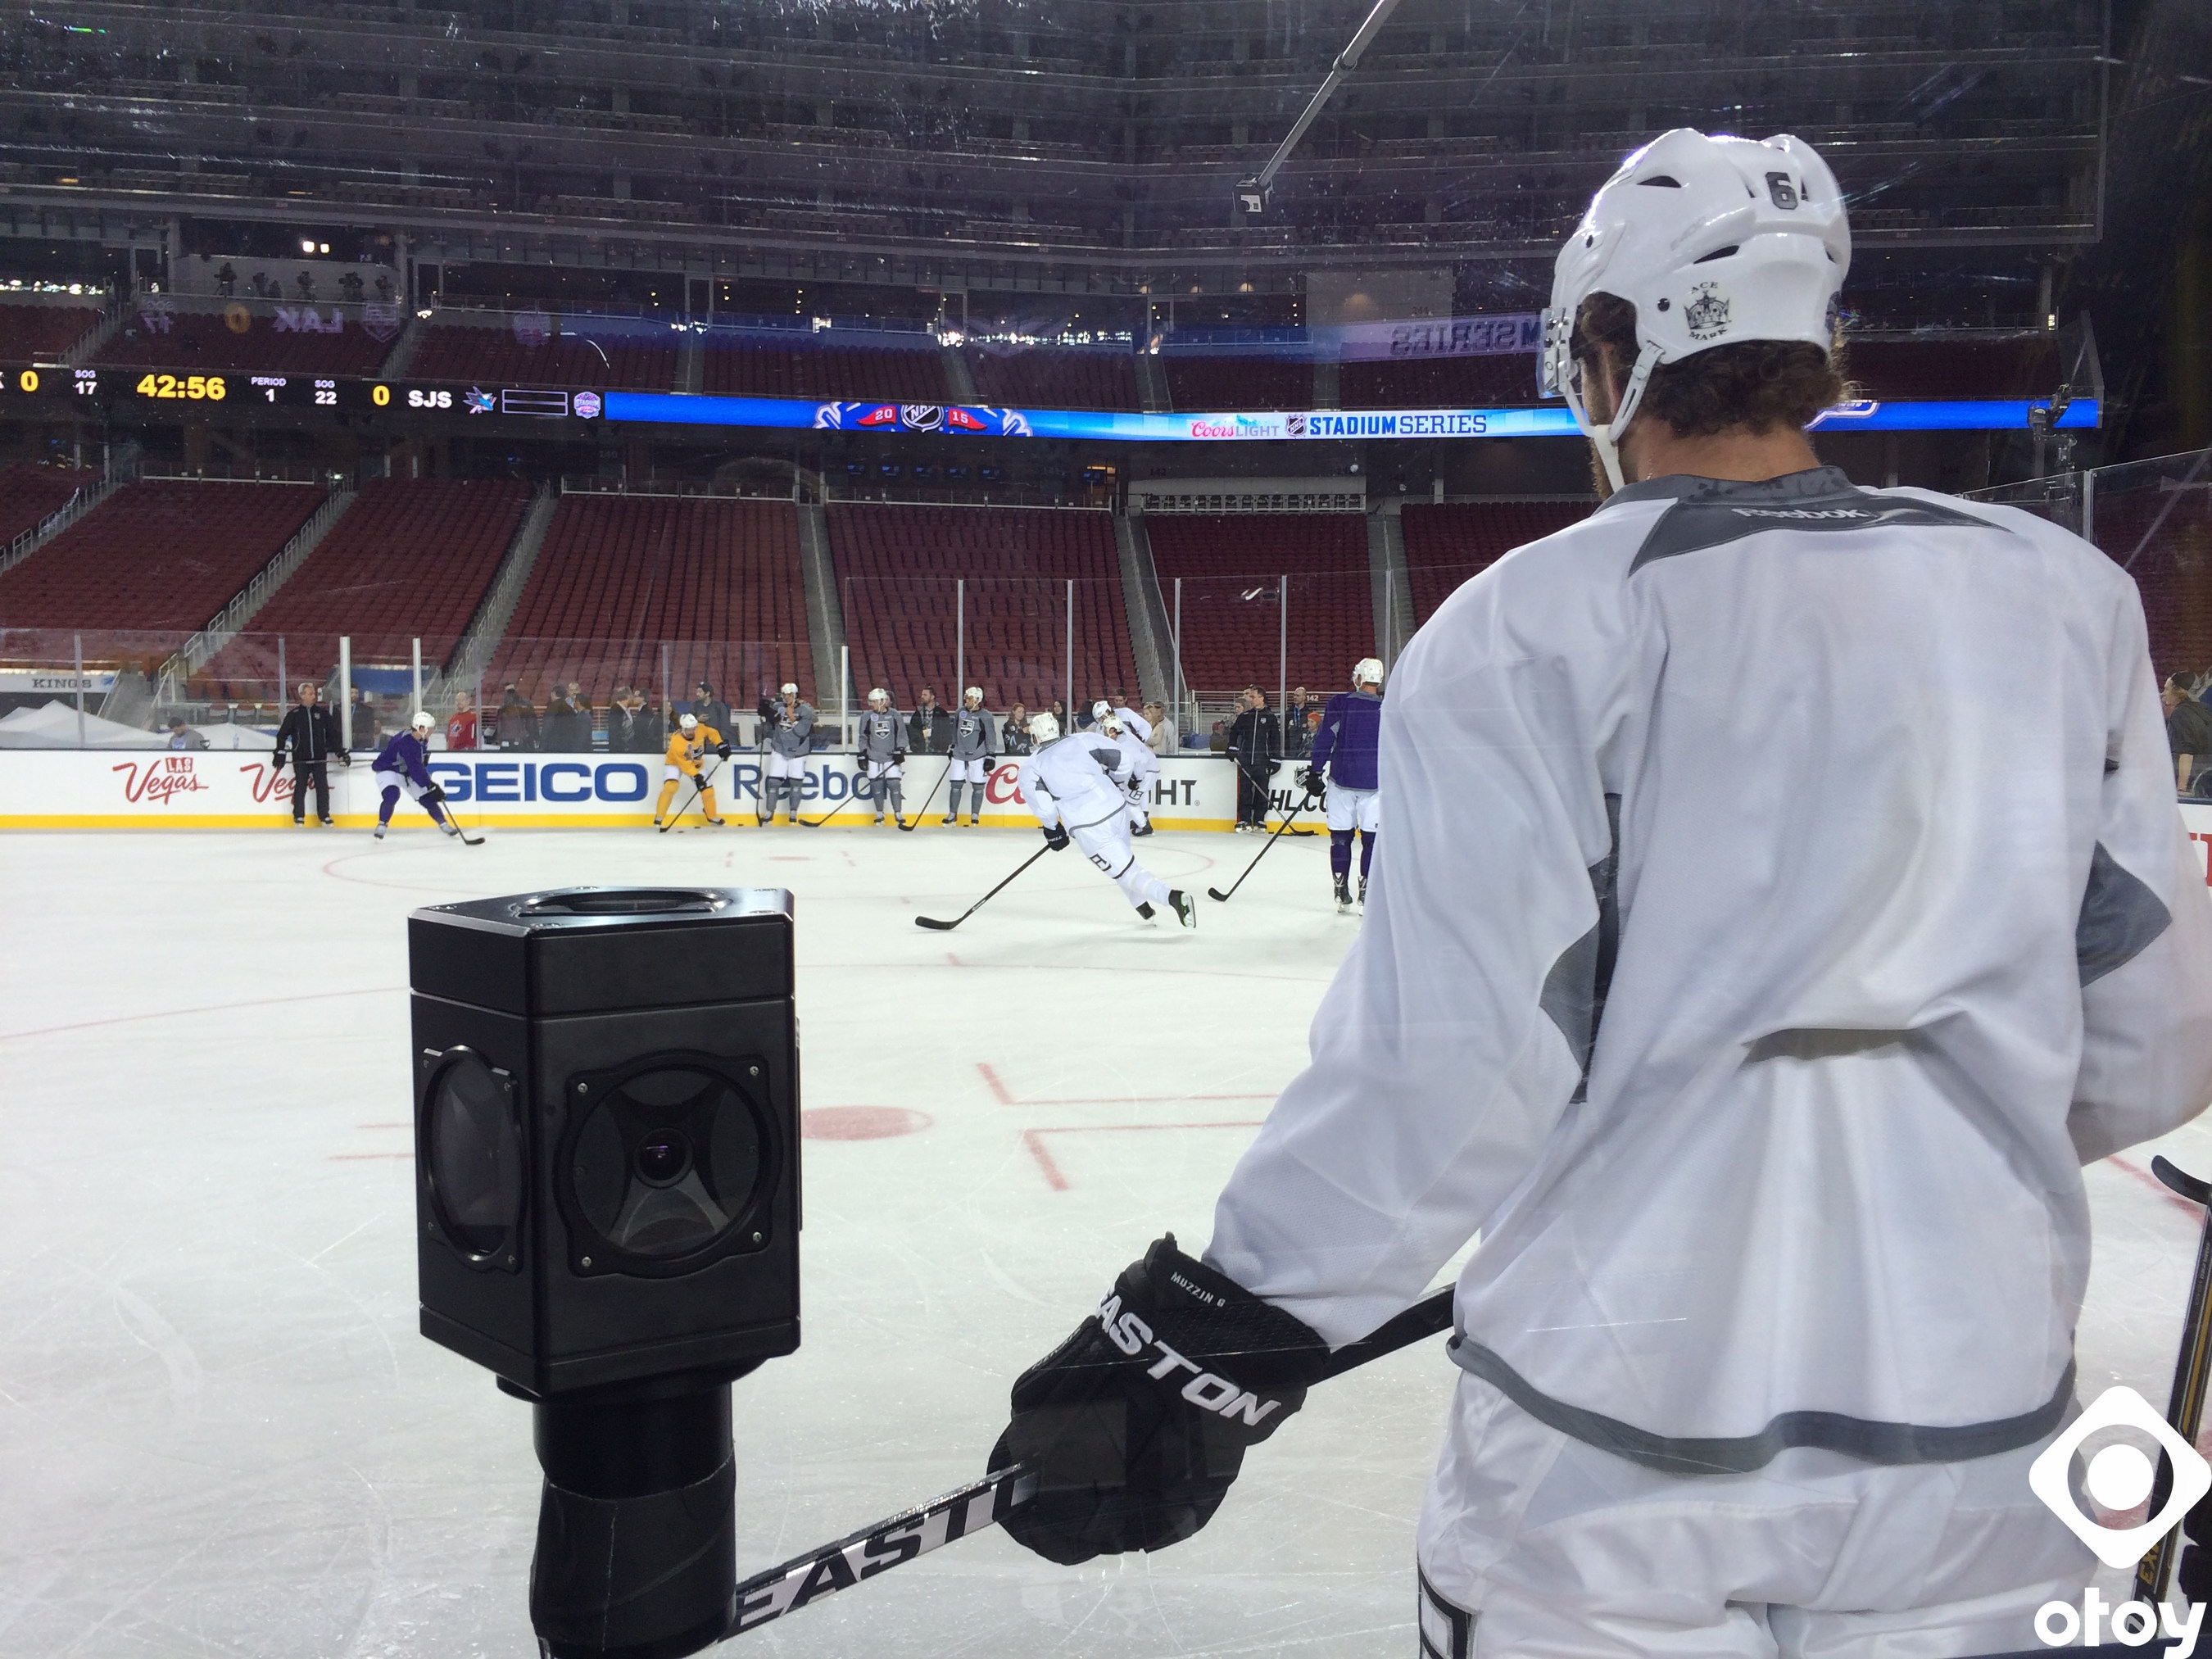 As good as being there: National Hockey League (NHL) and OTOY preview live streamed hockey game in 360-degree virtual reality